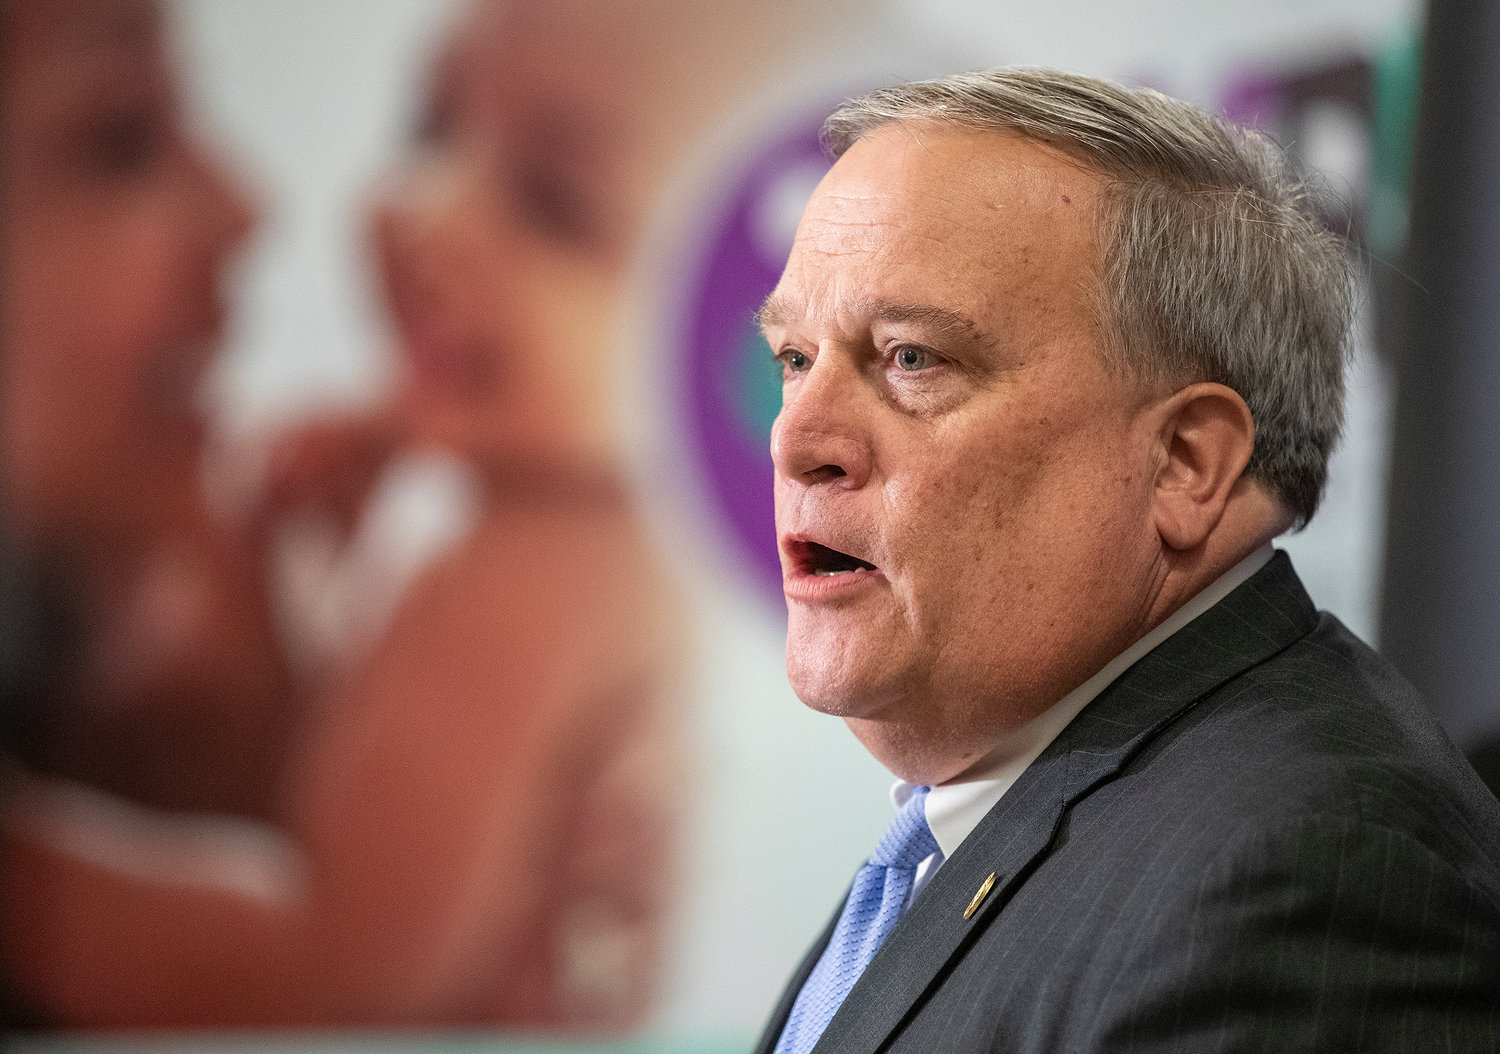 State Senate President Robert Stivers is part of a bipartisan effort to give a boost to neighborhoods in the West End of Louisville. (Robin Cornetet/Kentucky Today)